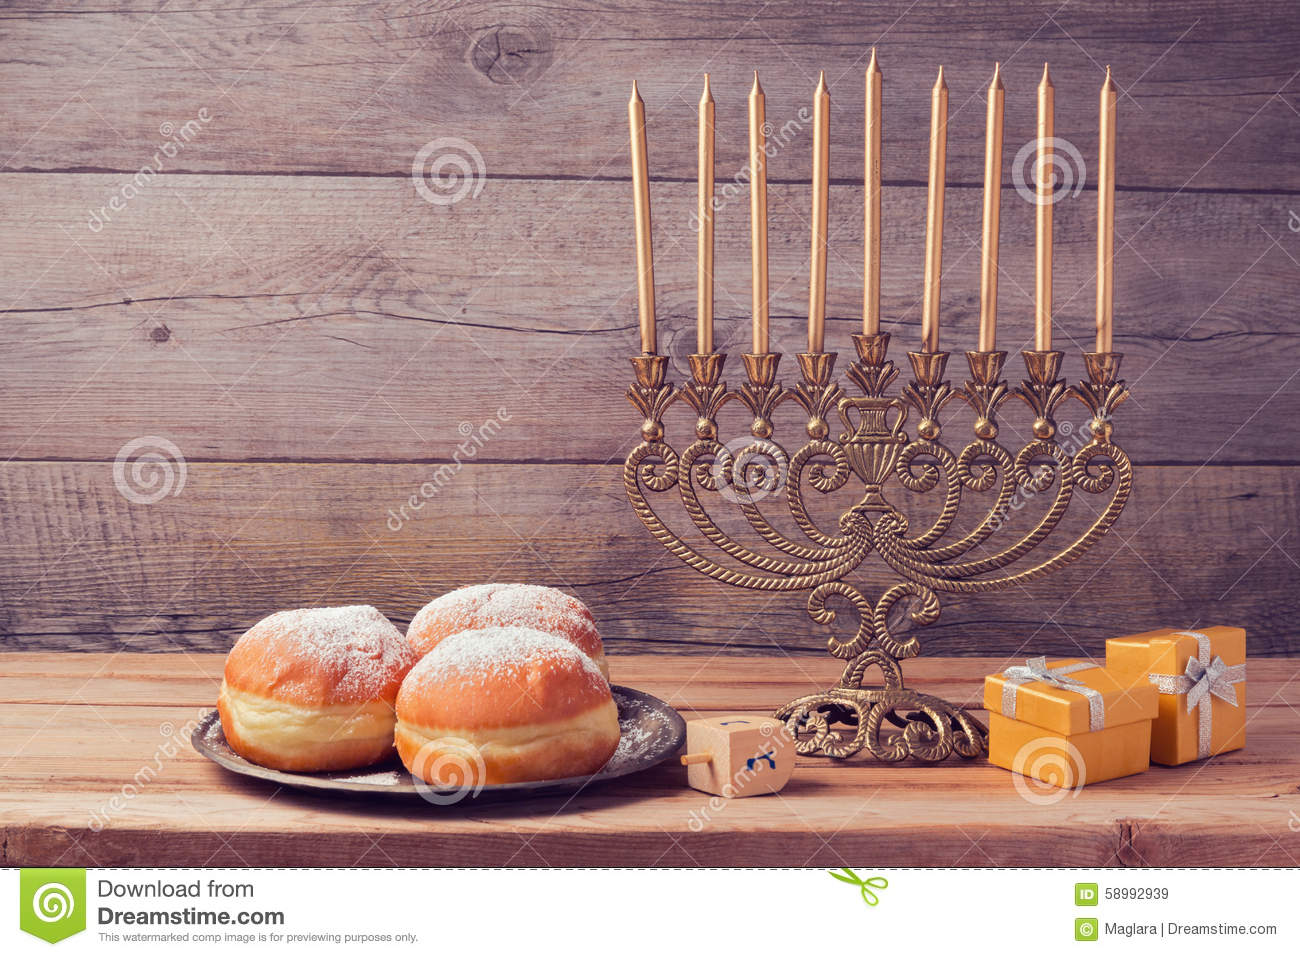 Jewish holiday Hanukkah celebration with vintage menorah over wooden background